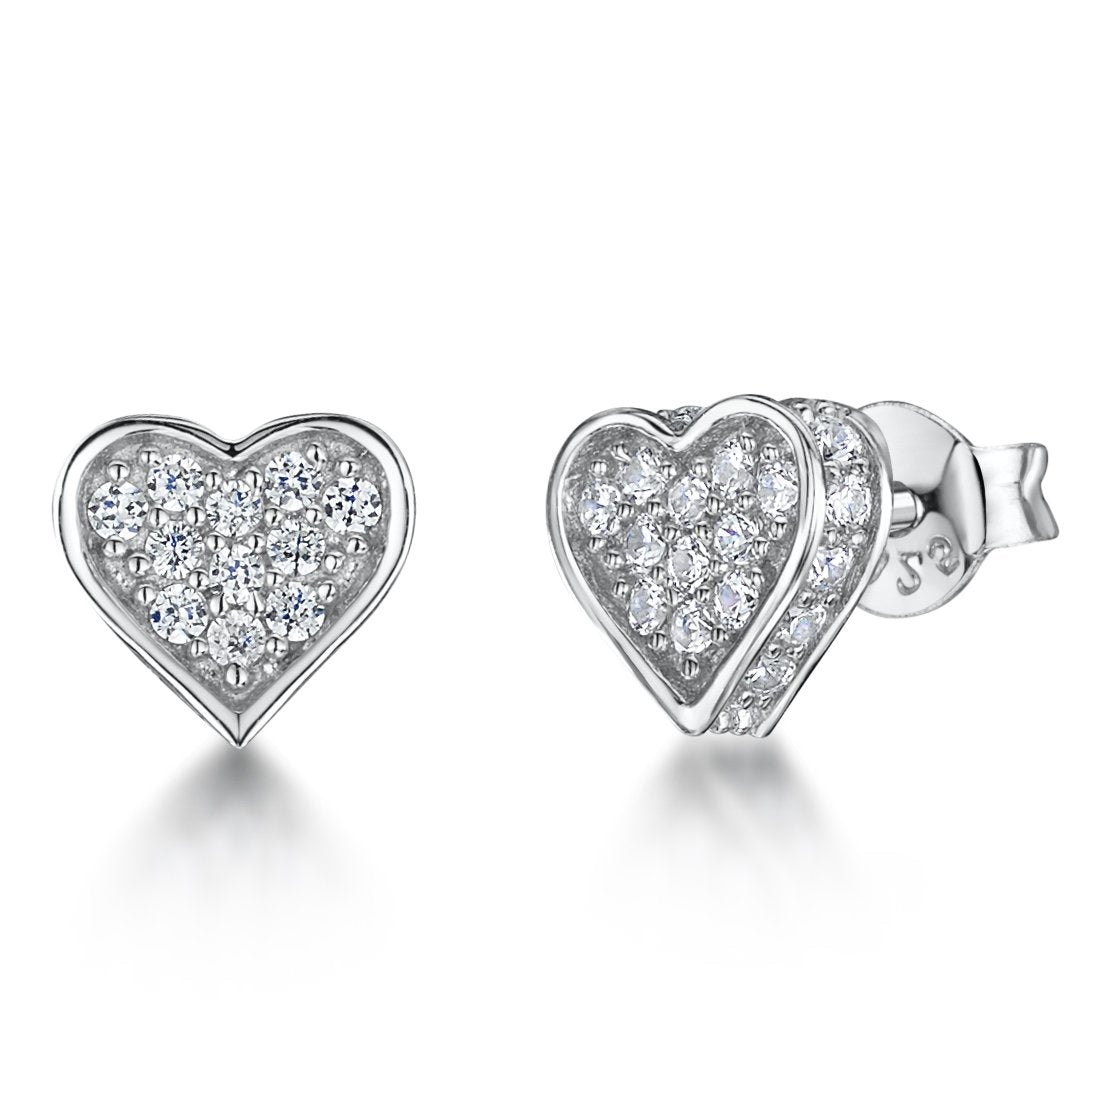 Sterling Silver Small  Pave Cubic Zirconia   Heart Stud  Earringsearrings - JOOLS By Jenny Brown